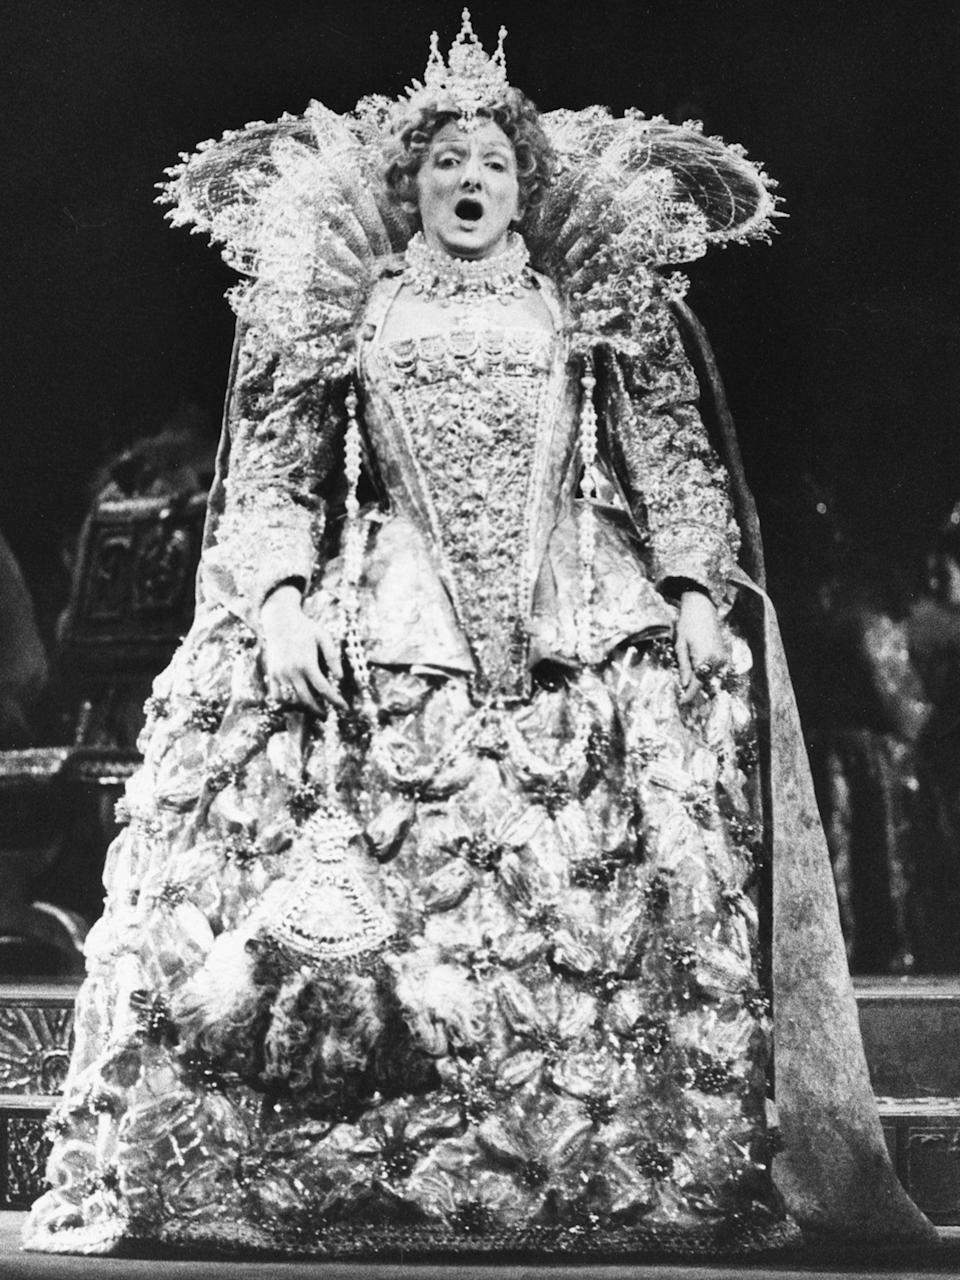 Tinsley as Queen Elizabeth I in Donizetti's 'Mary Stuart' at the London ColiseumGetty